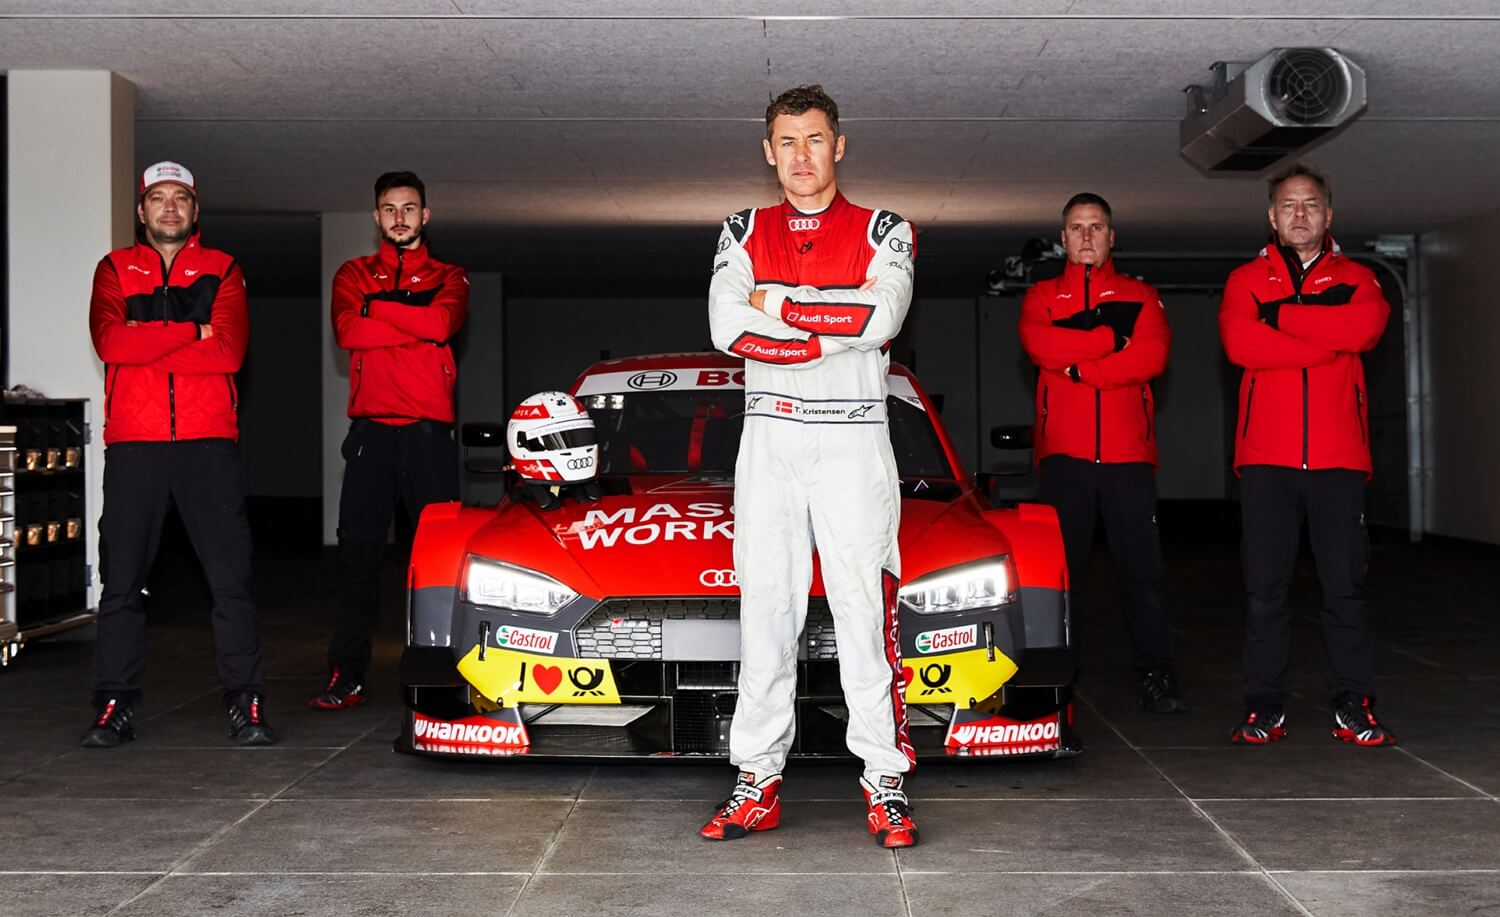 Audi Sport RS5 DTM race car - MASCOT WOKRWEAR - Tom Kristensen - Mechanics - MASCOT headquarters